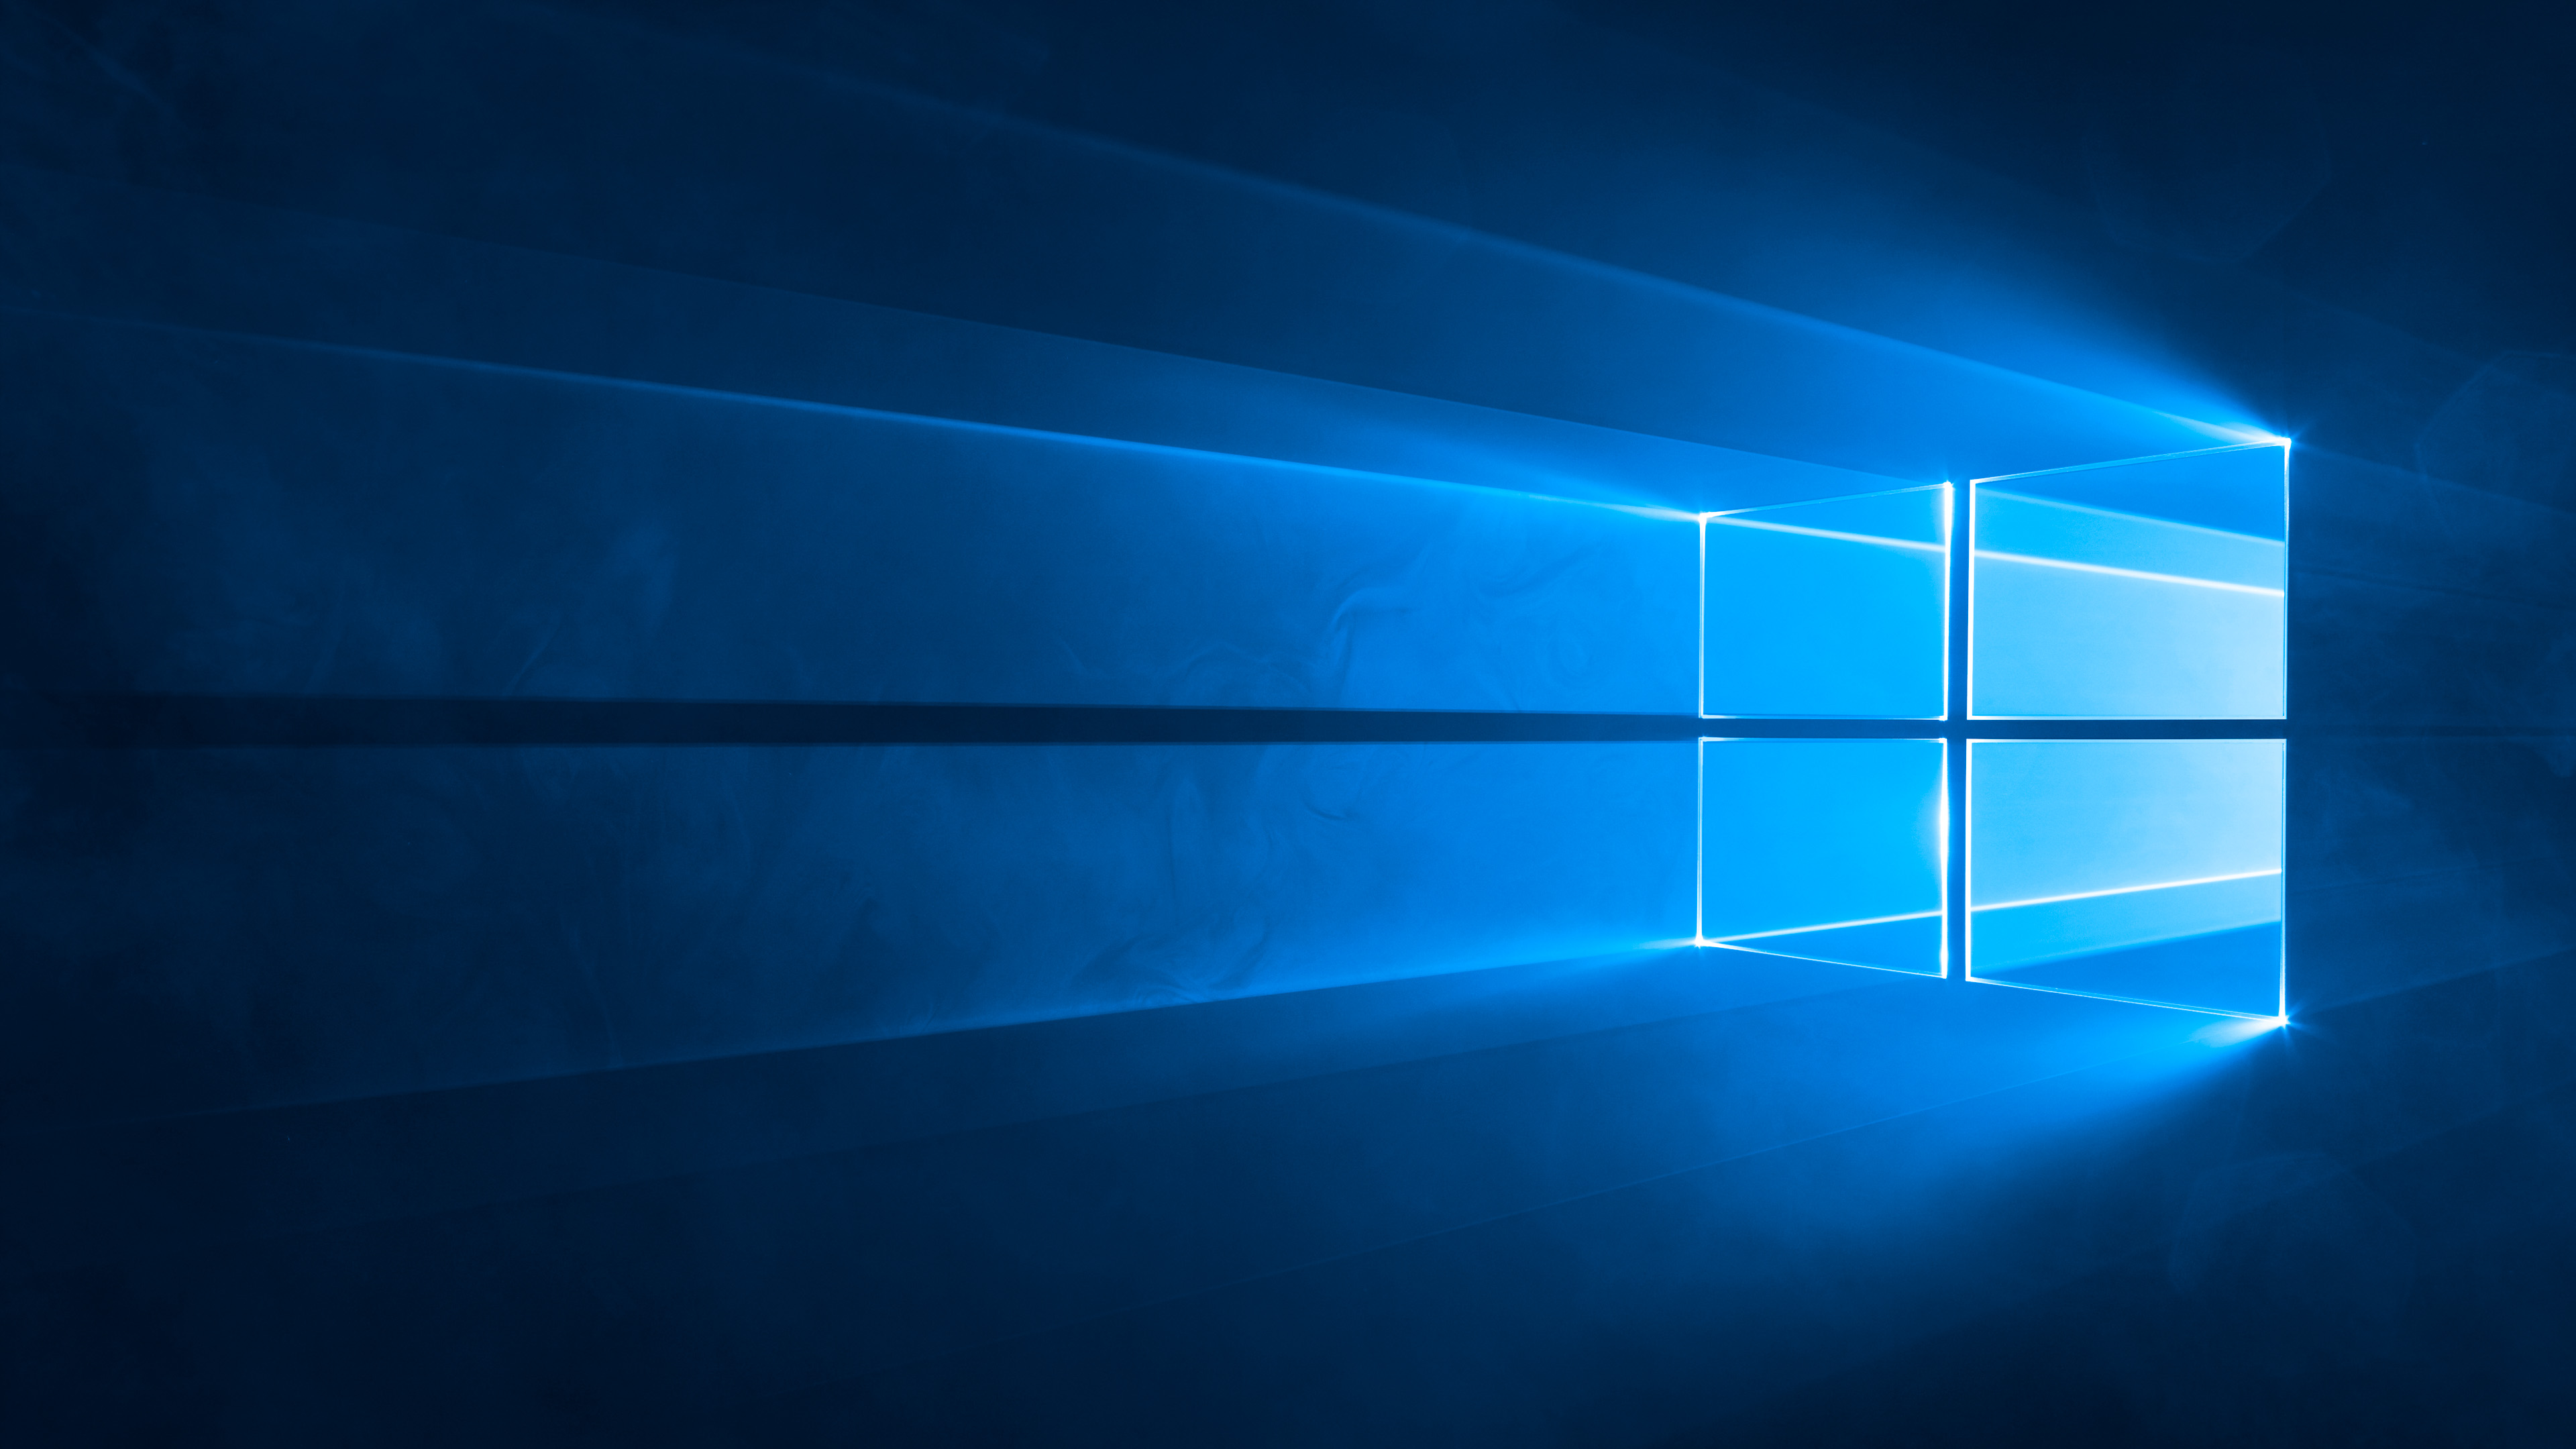 Windows 10 free upgrade has a price : your privacy